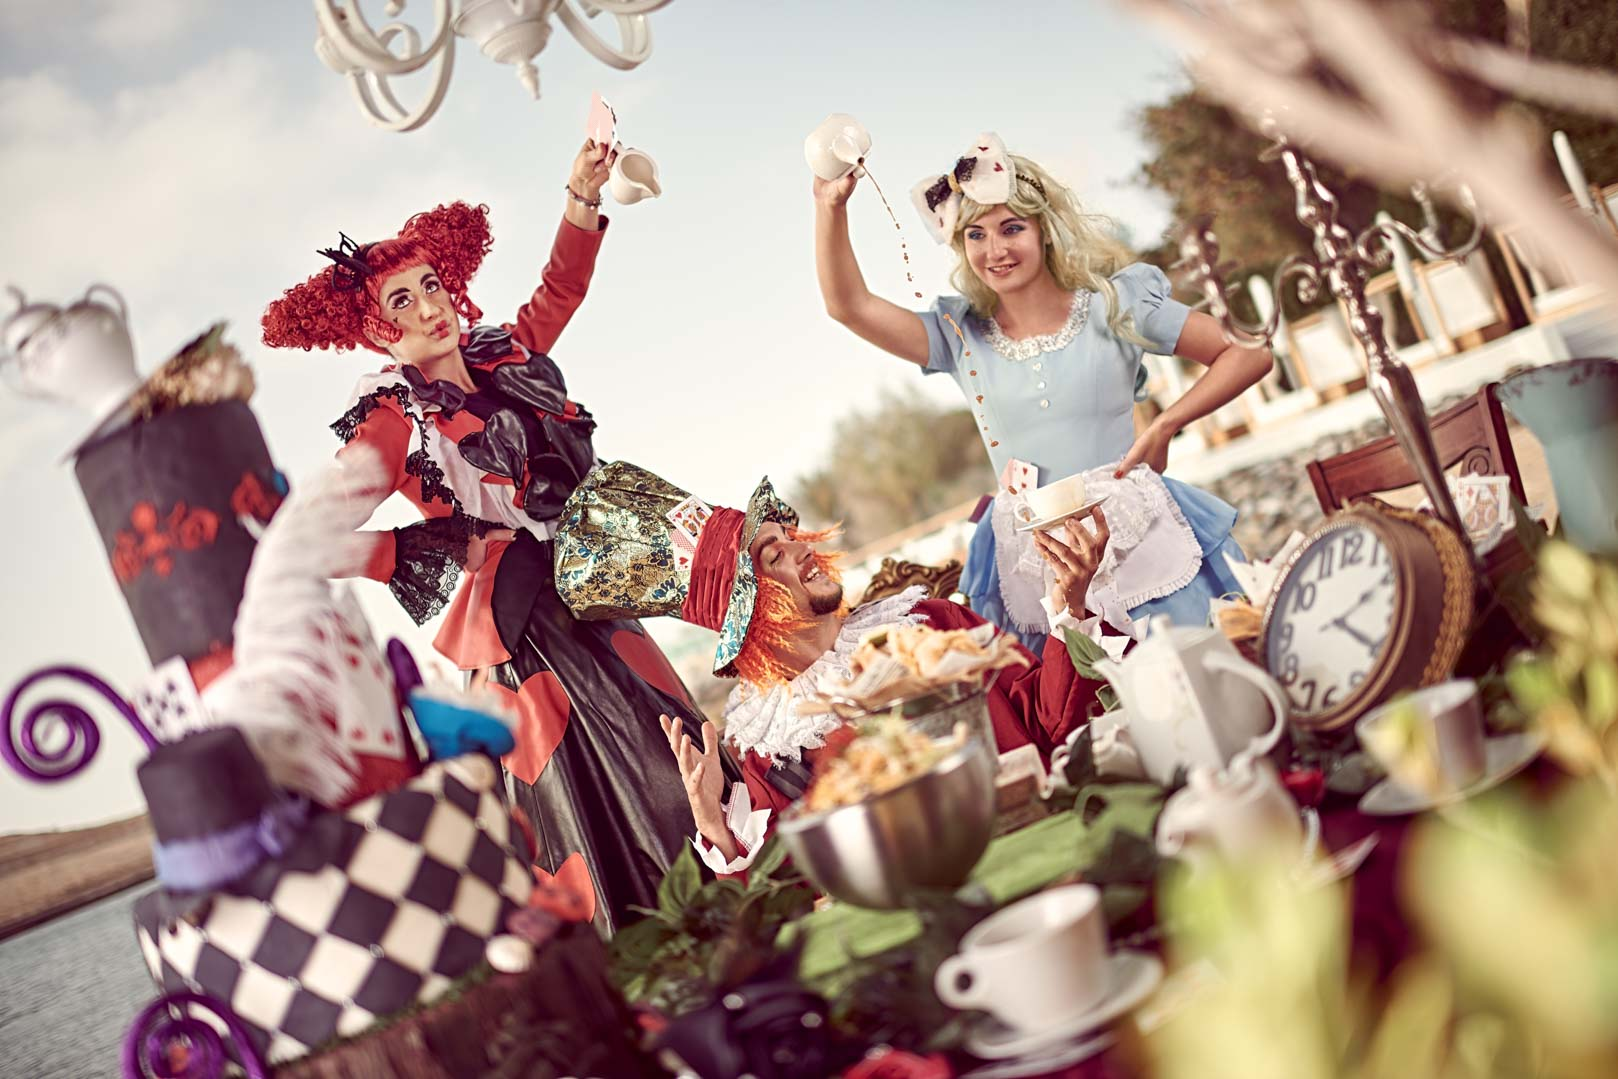 Blue Marlin Ibiza UAE - Alice in Wonderland